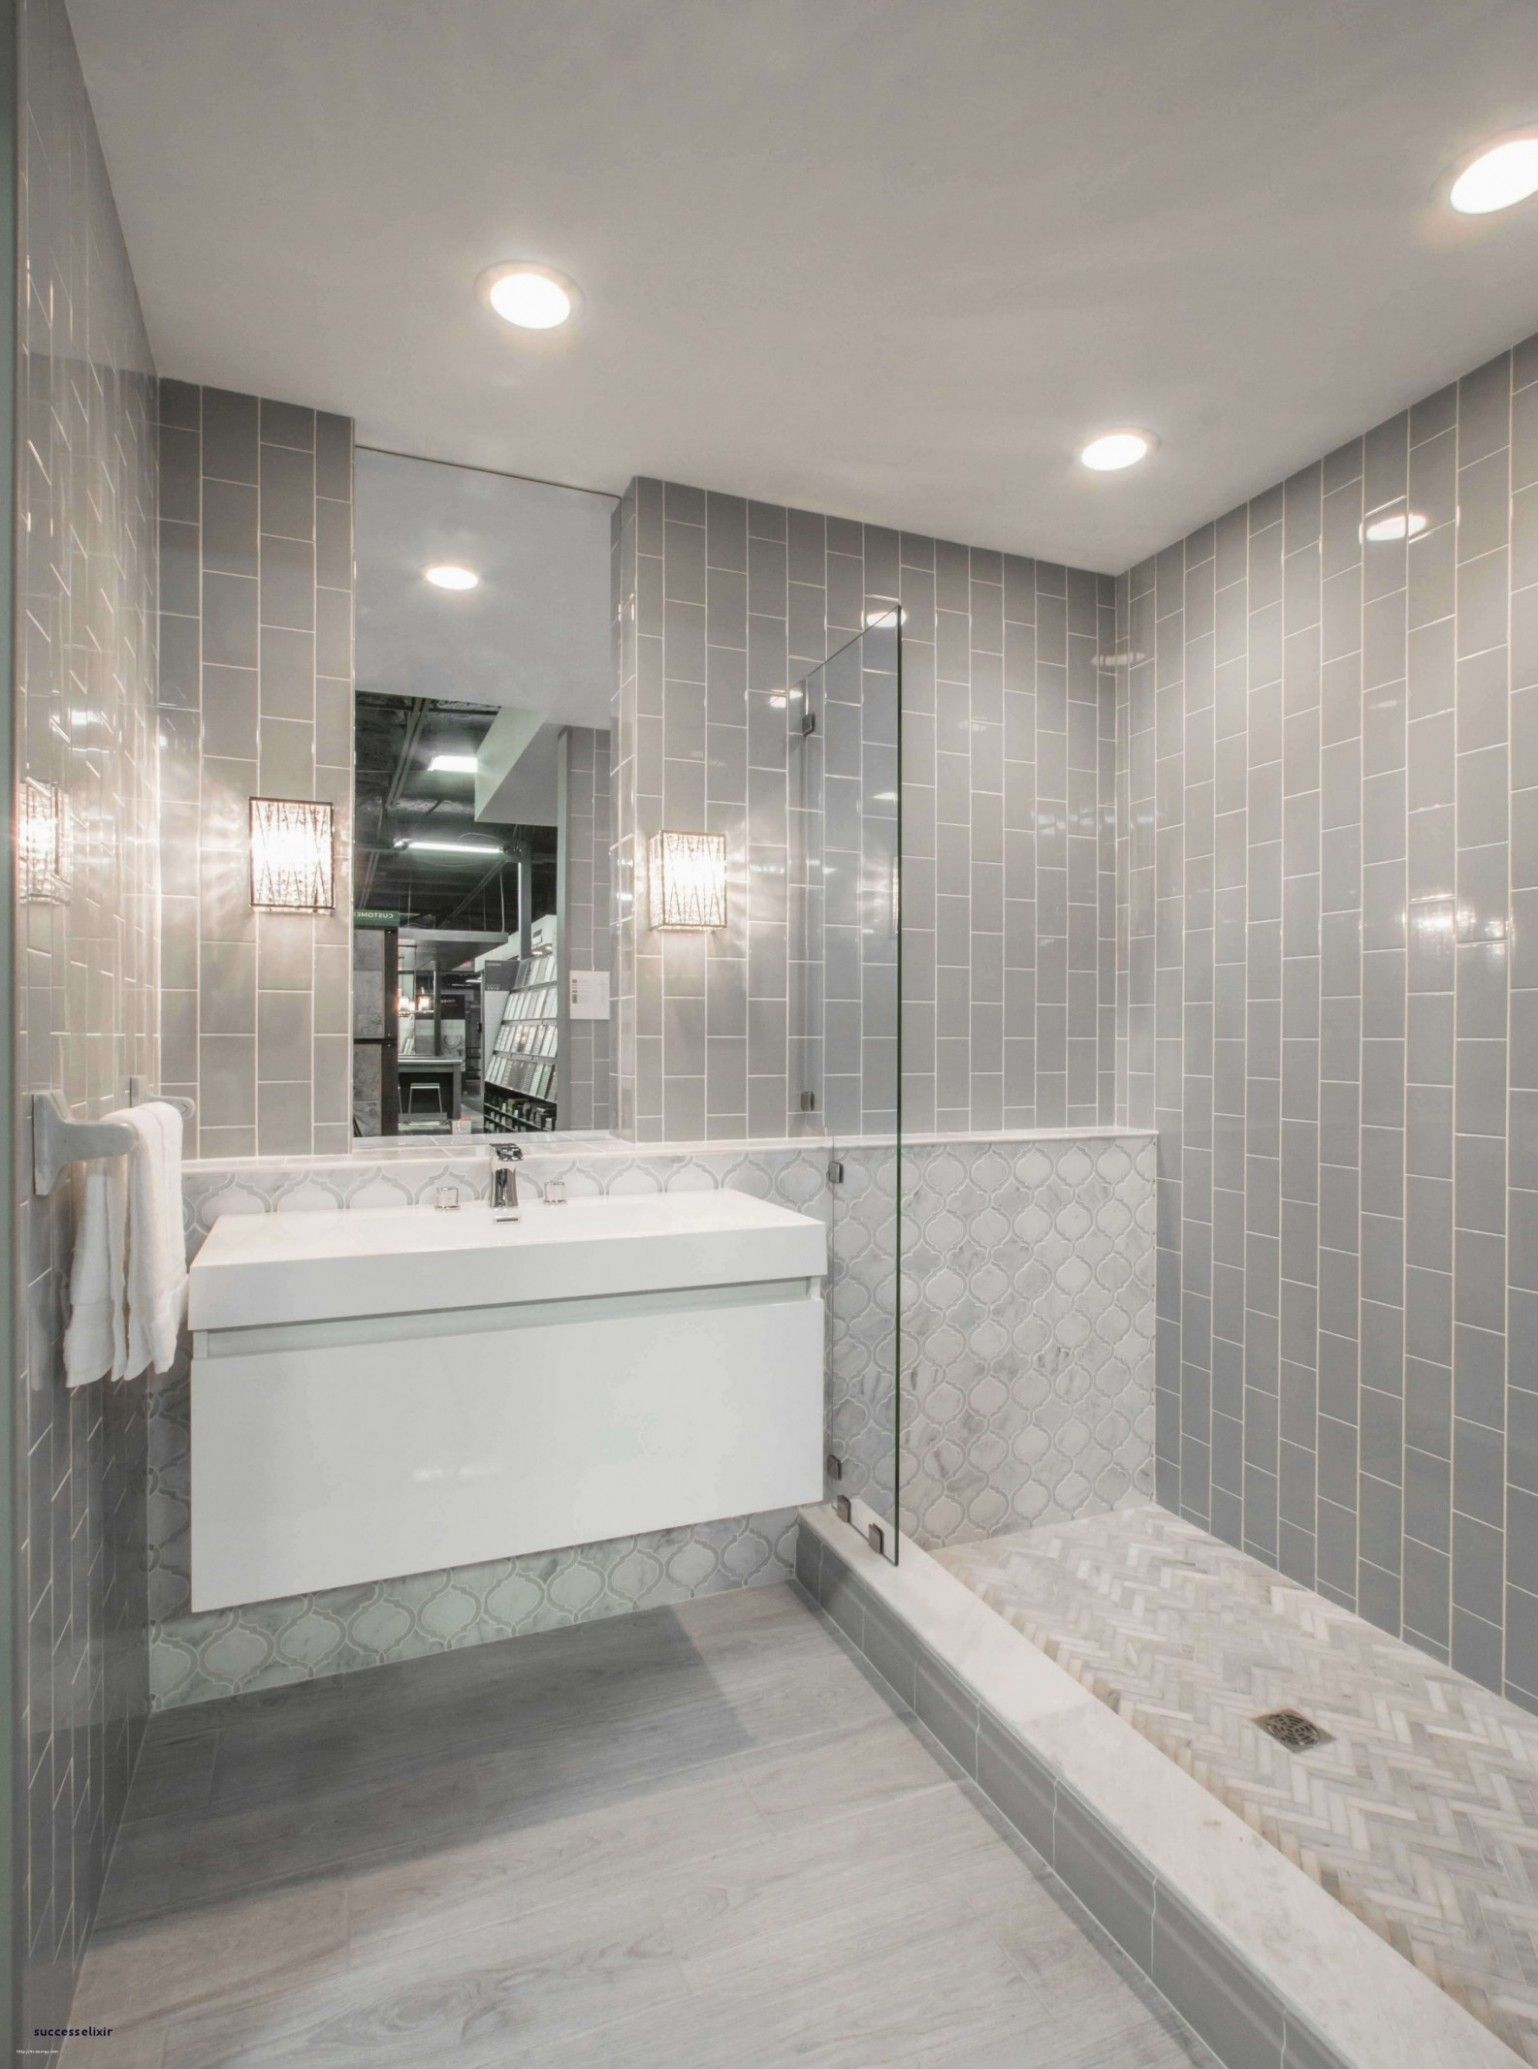 12 Reasons Why You Shouldn T Go To Design Tool For Bathroom Remodel On Your Own Desain Kamar Mandi Modern Kamar Mandi Modern Interior Kamar Mandi